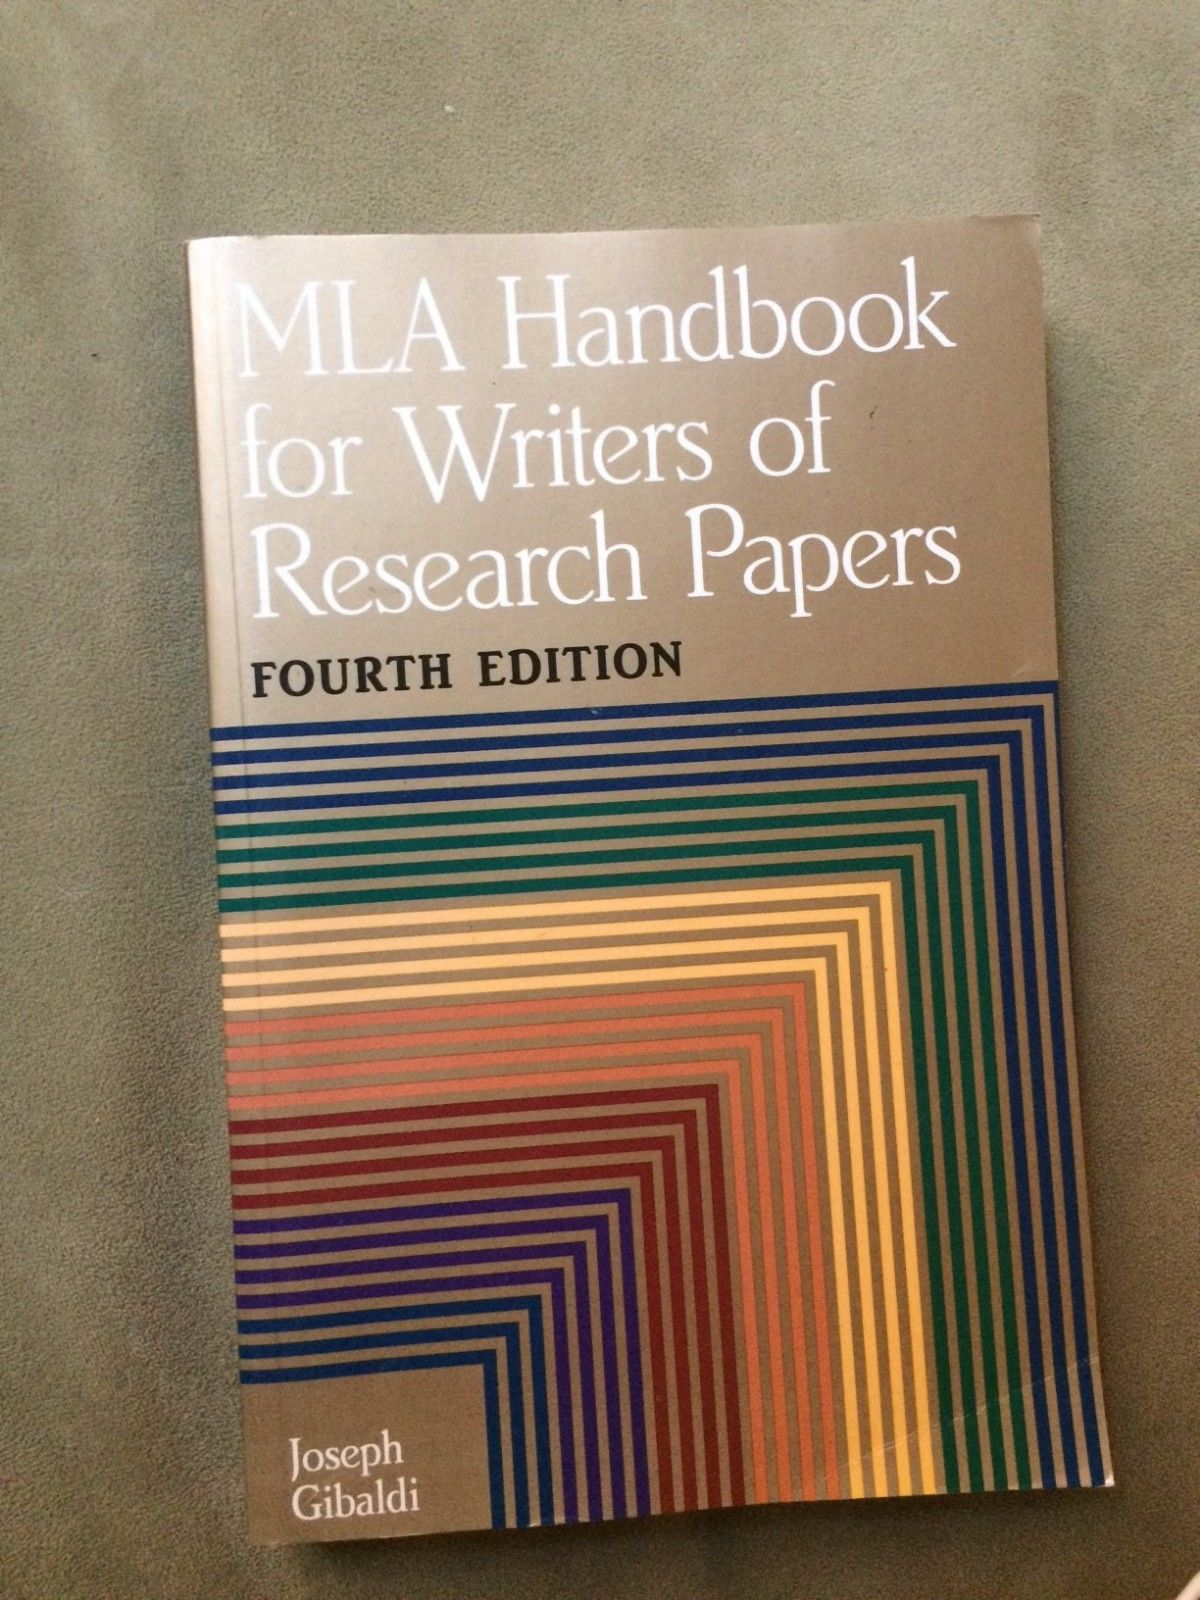 004 S L1600 Research Paper Mla Handbook For Writers Of Papers 8th Unique Edition Pdf Free Download Full